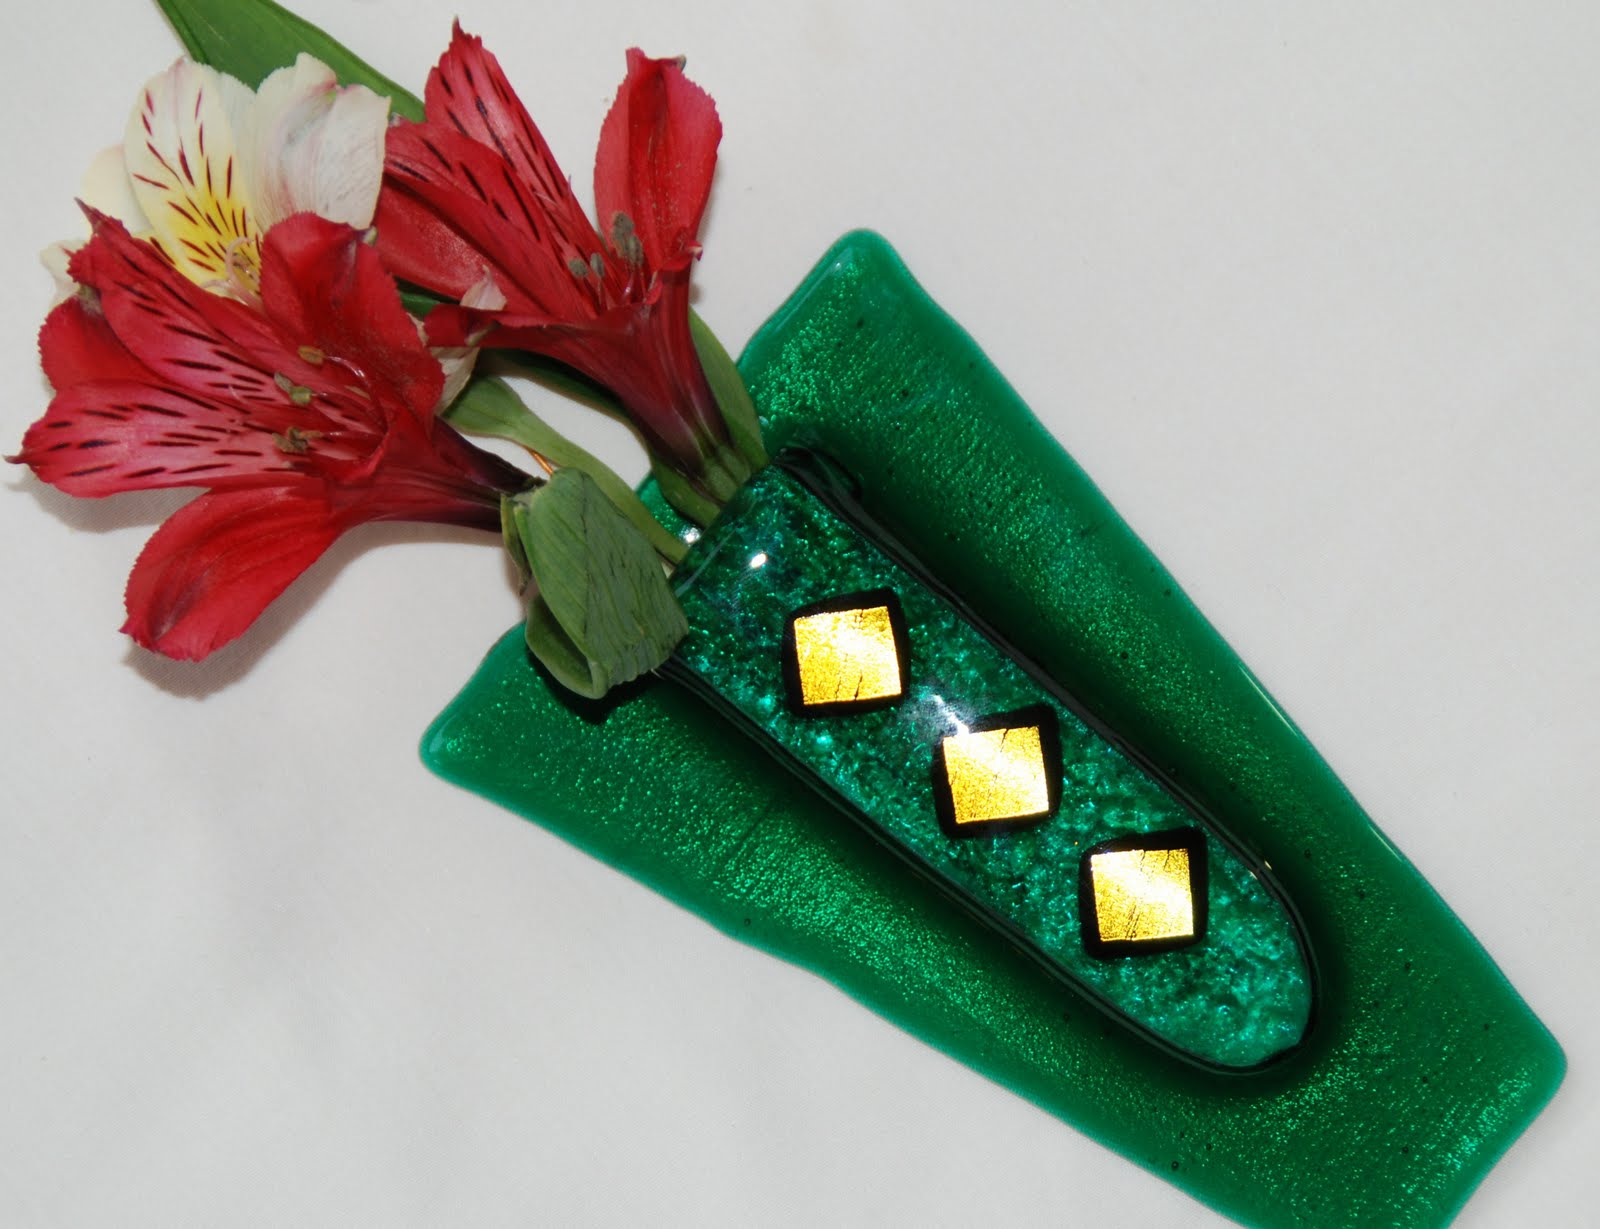 Omega glass fused glass art thats ridiculously cool flowers on hanging bud vases in fused glass reviewsmspy